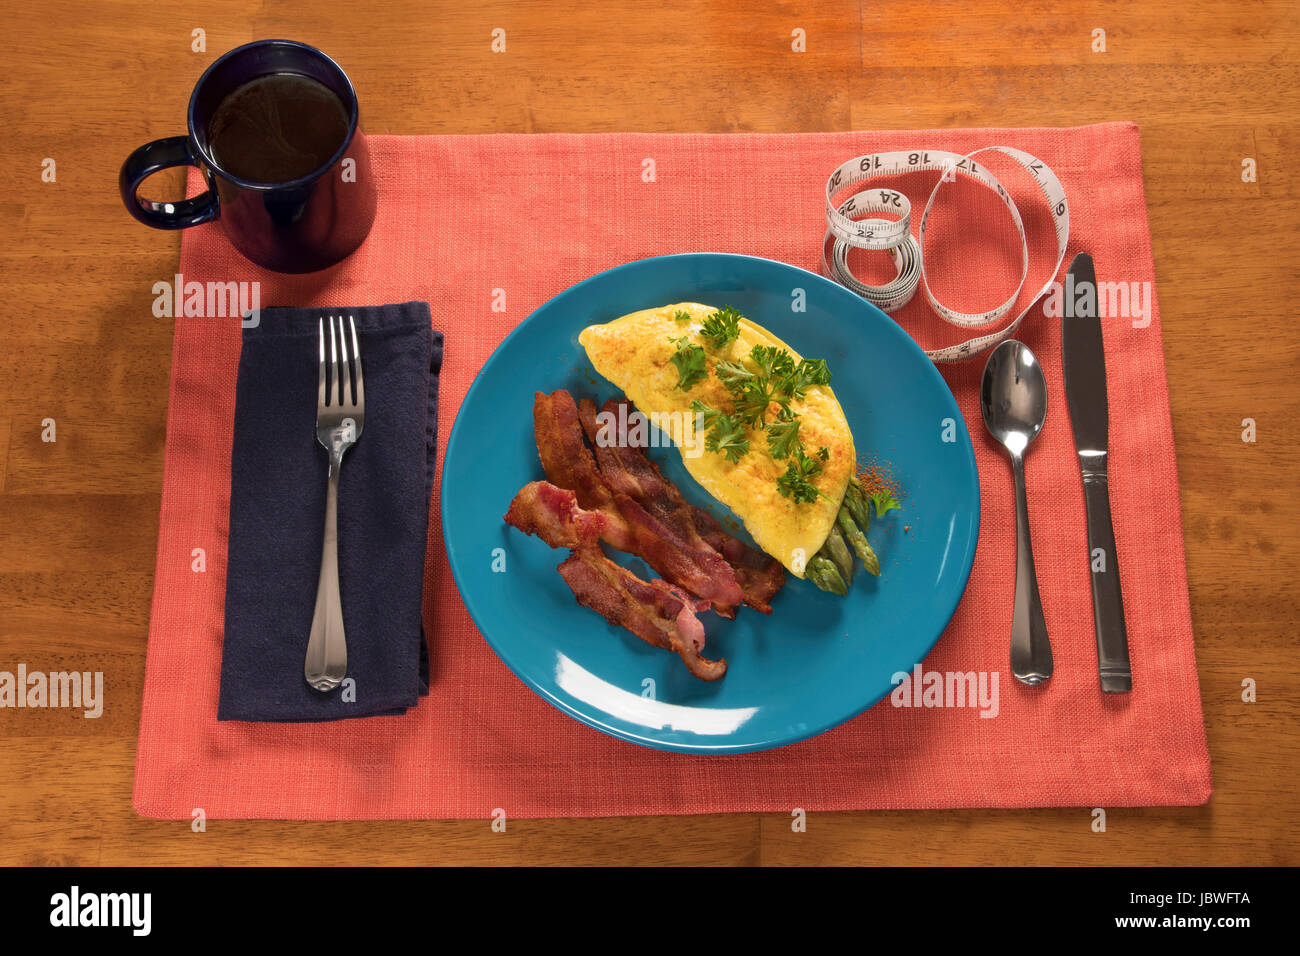 Horizontal food shot of asparagus omelet, bacon, coffee and a measuring tape - Stock Image